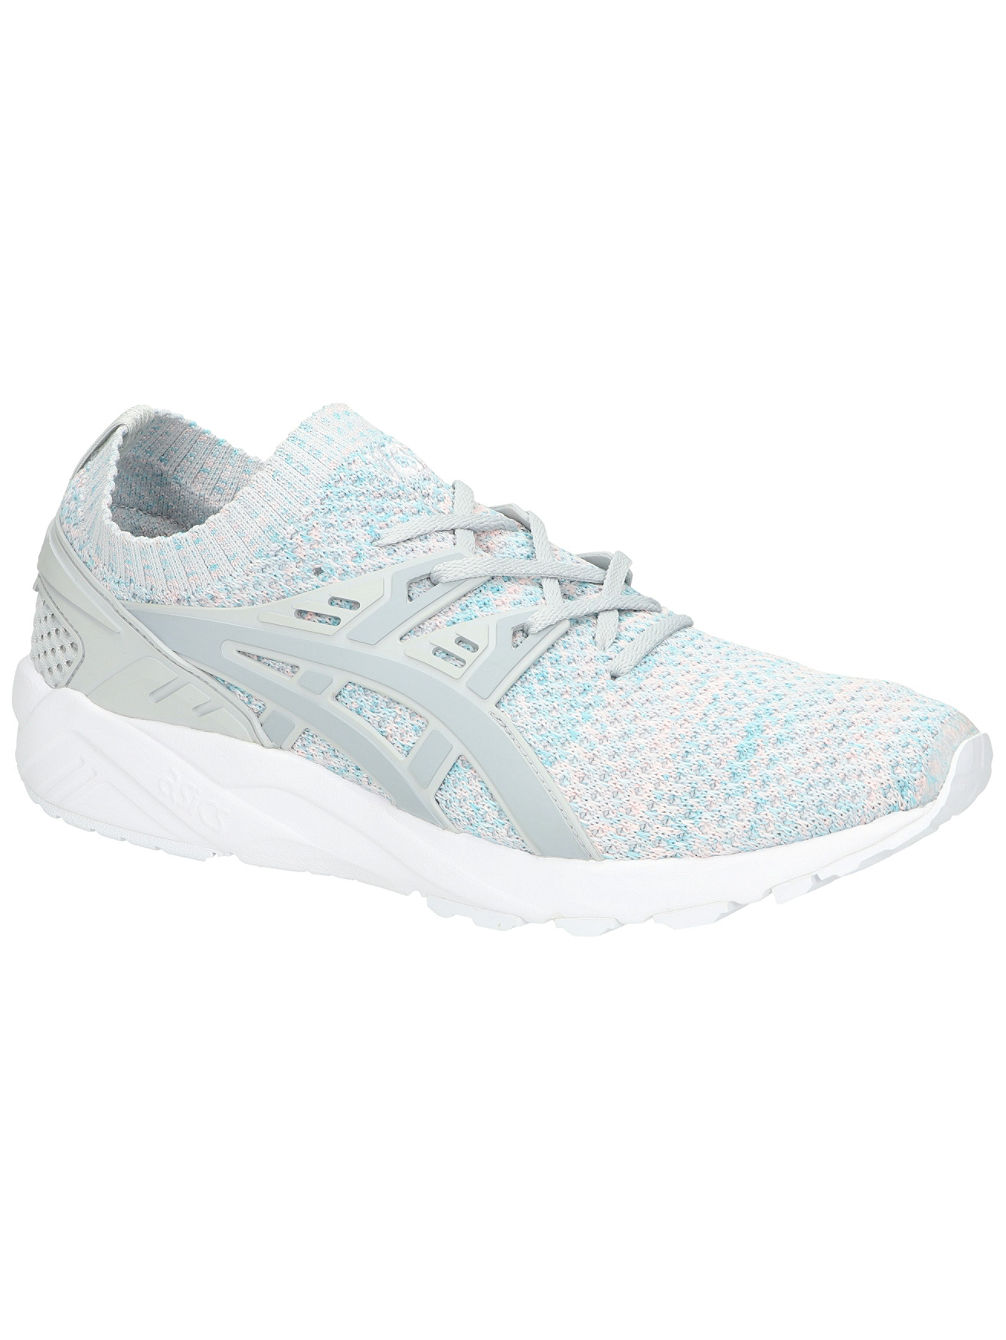 Gel-Kayano Trainer Knit Sneakers